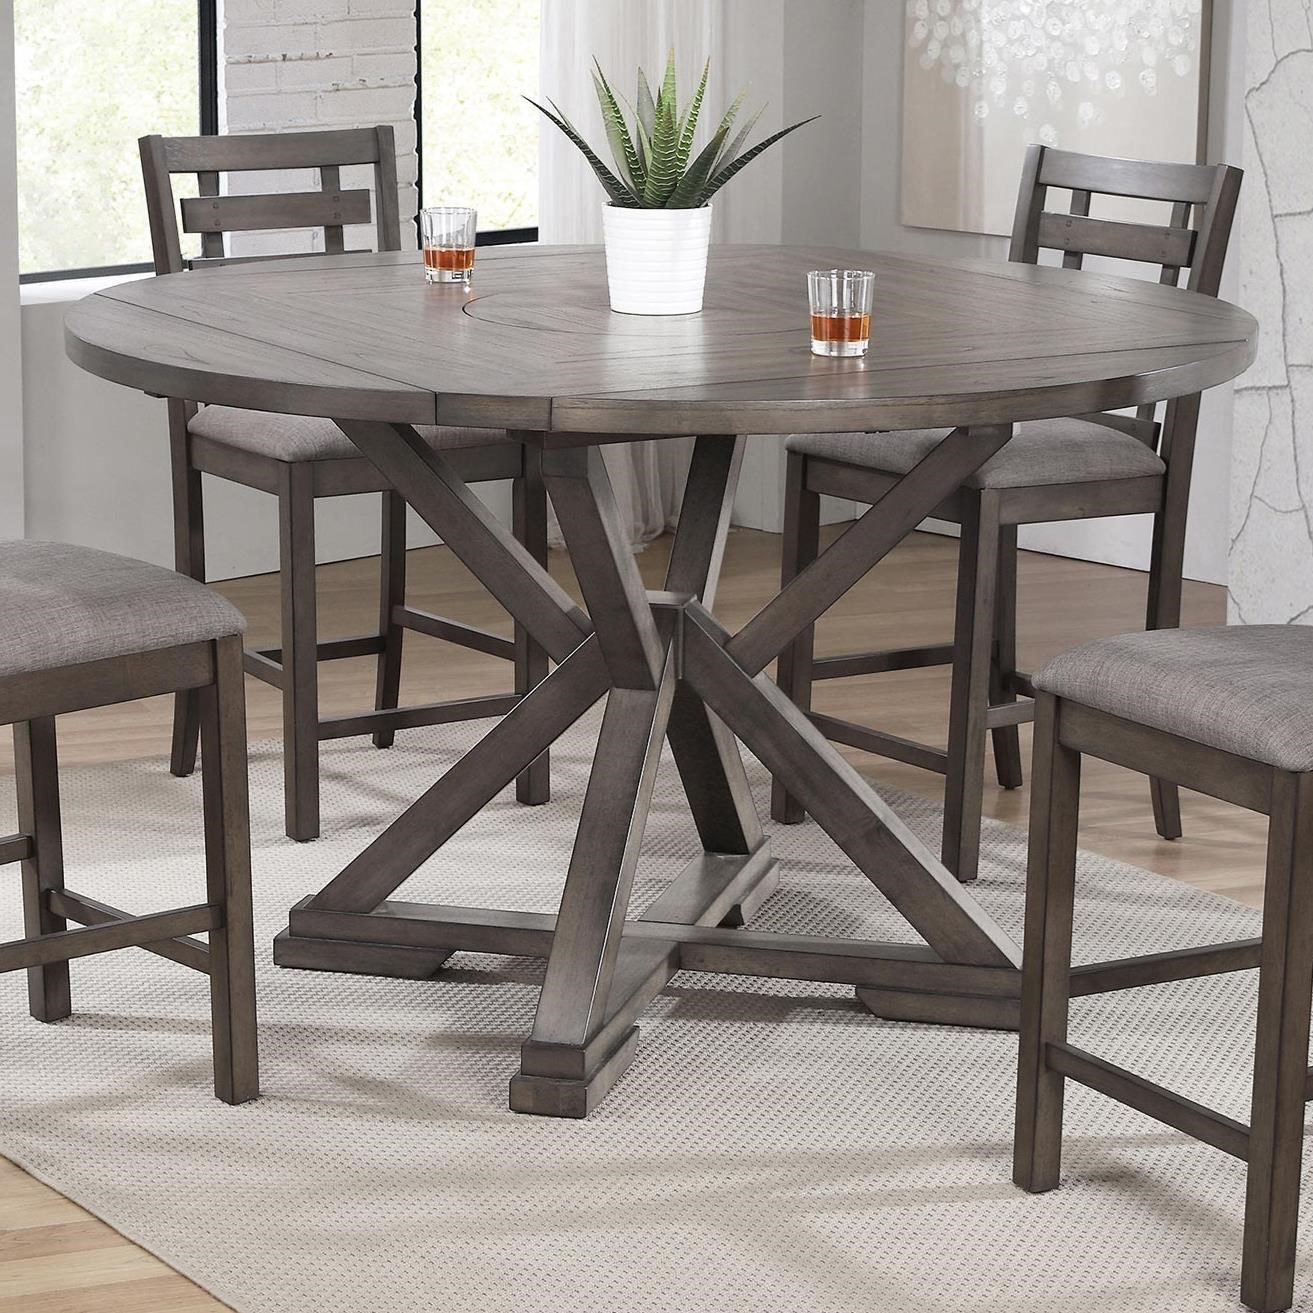 Stratford Counter Height 60 Round Tall Table W Lazy Susan And Drop Leaves Sadler S Home Furnishings Pub Tables